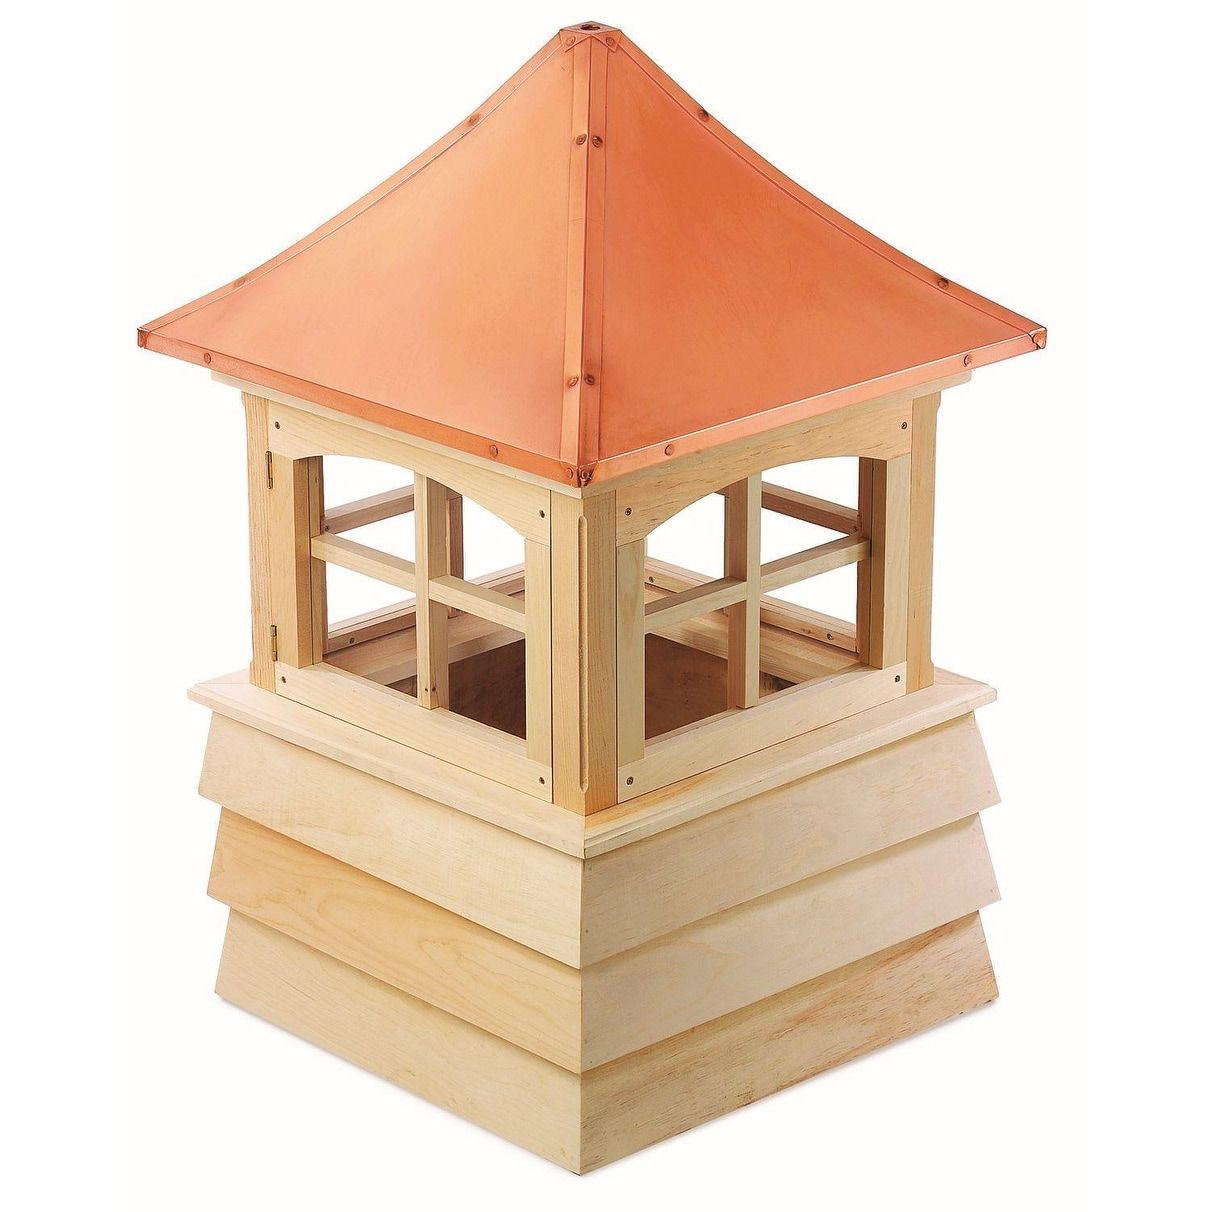 Best 49 Handcrafted Guilford Copper Roof Wooden Cupola White 400 x 300